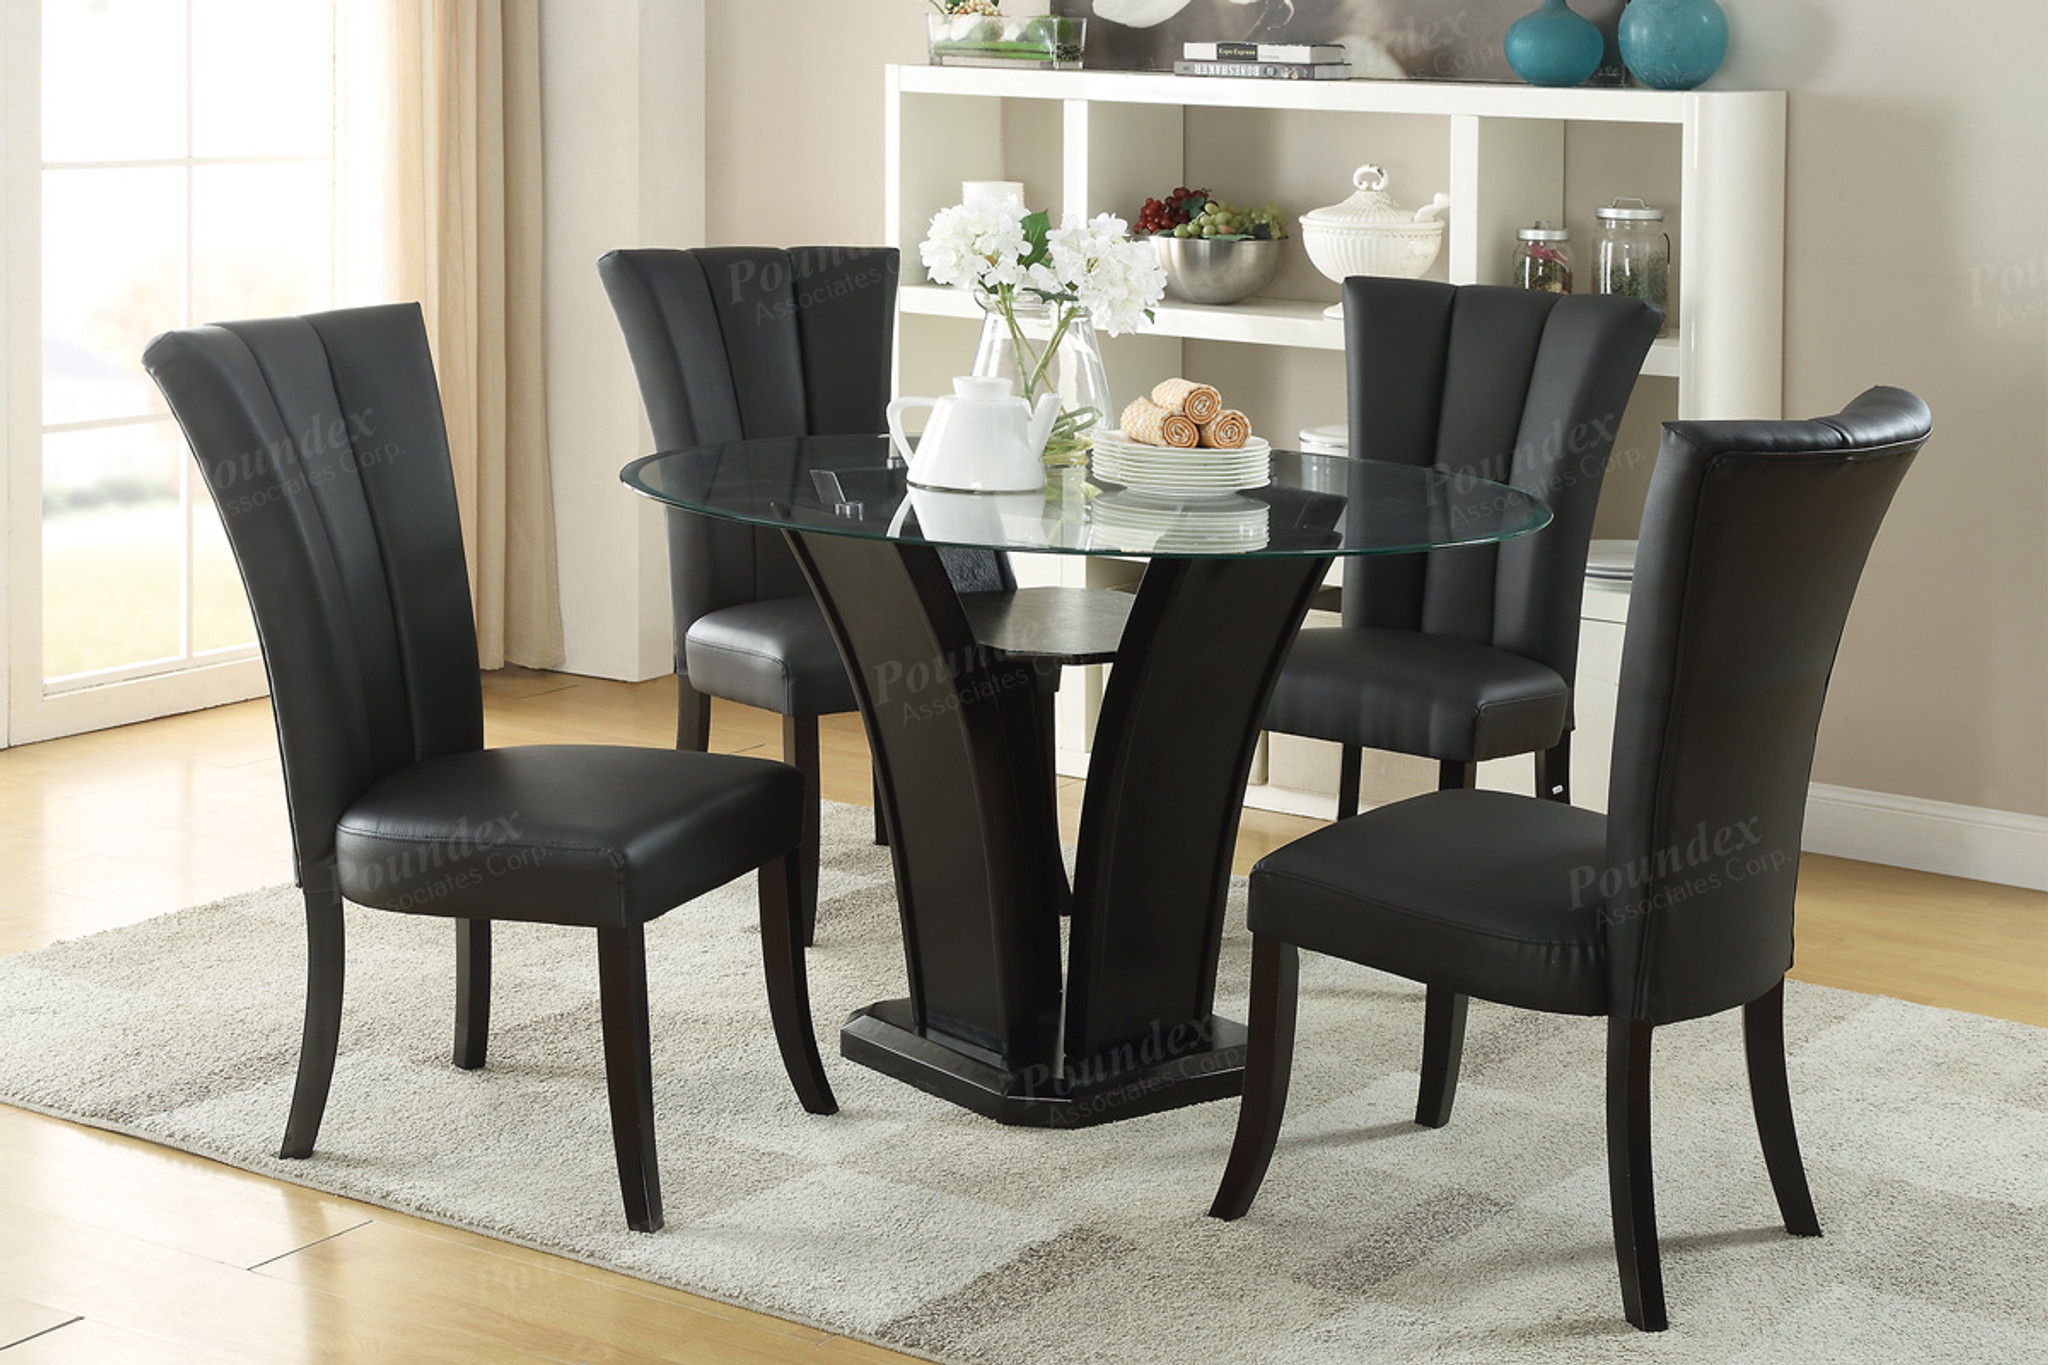 glass dining room furniture | KASSA MALL HOME FURNITURE - F2270 - 5-PIECES ROUND GLASS ...